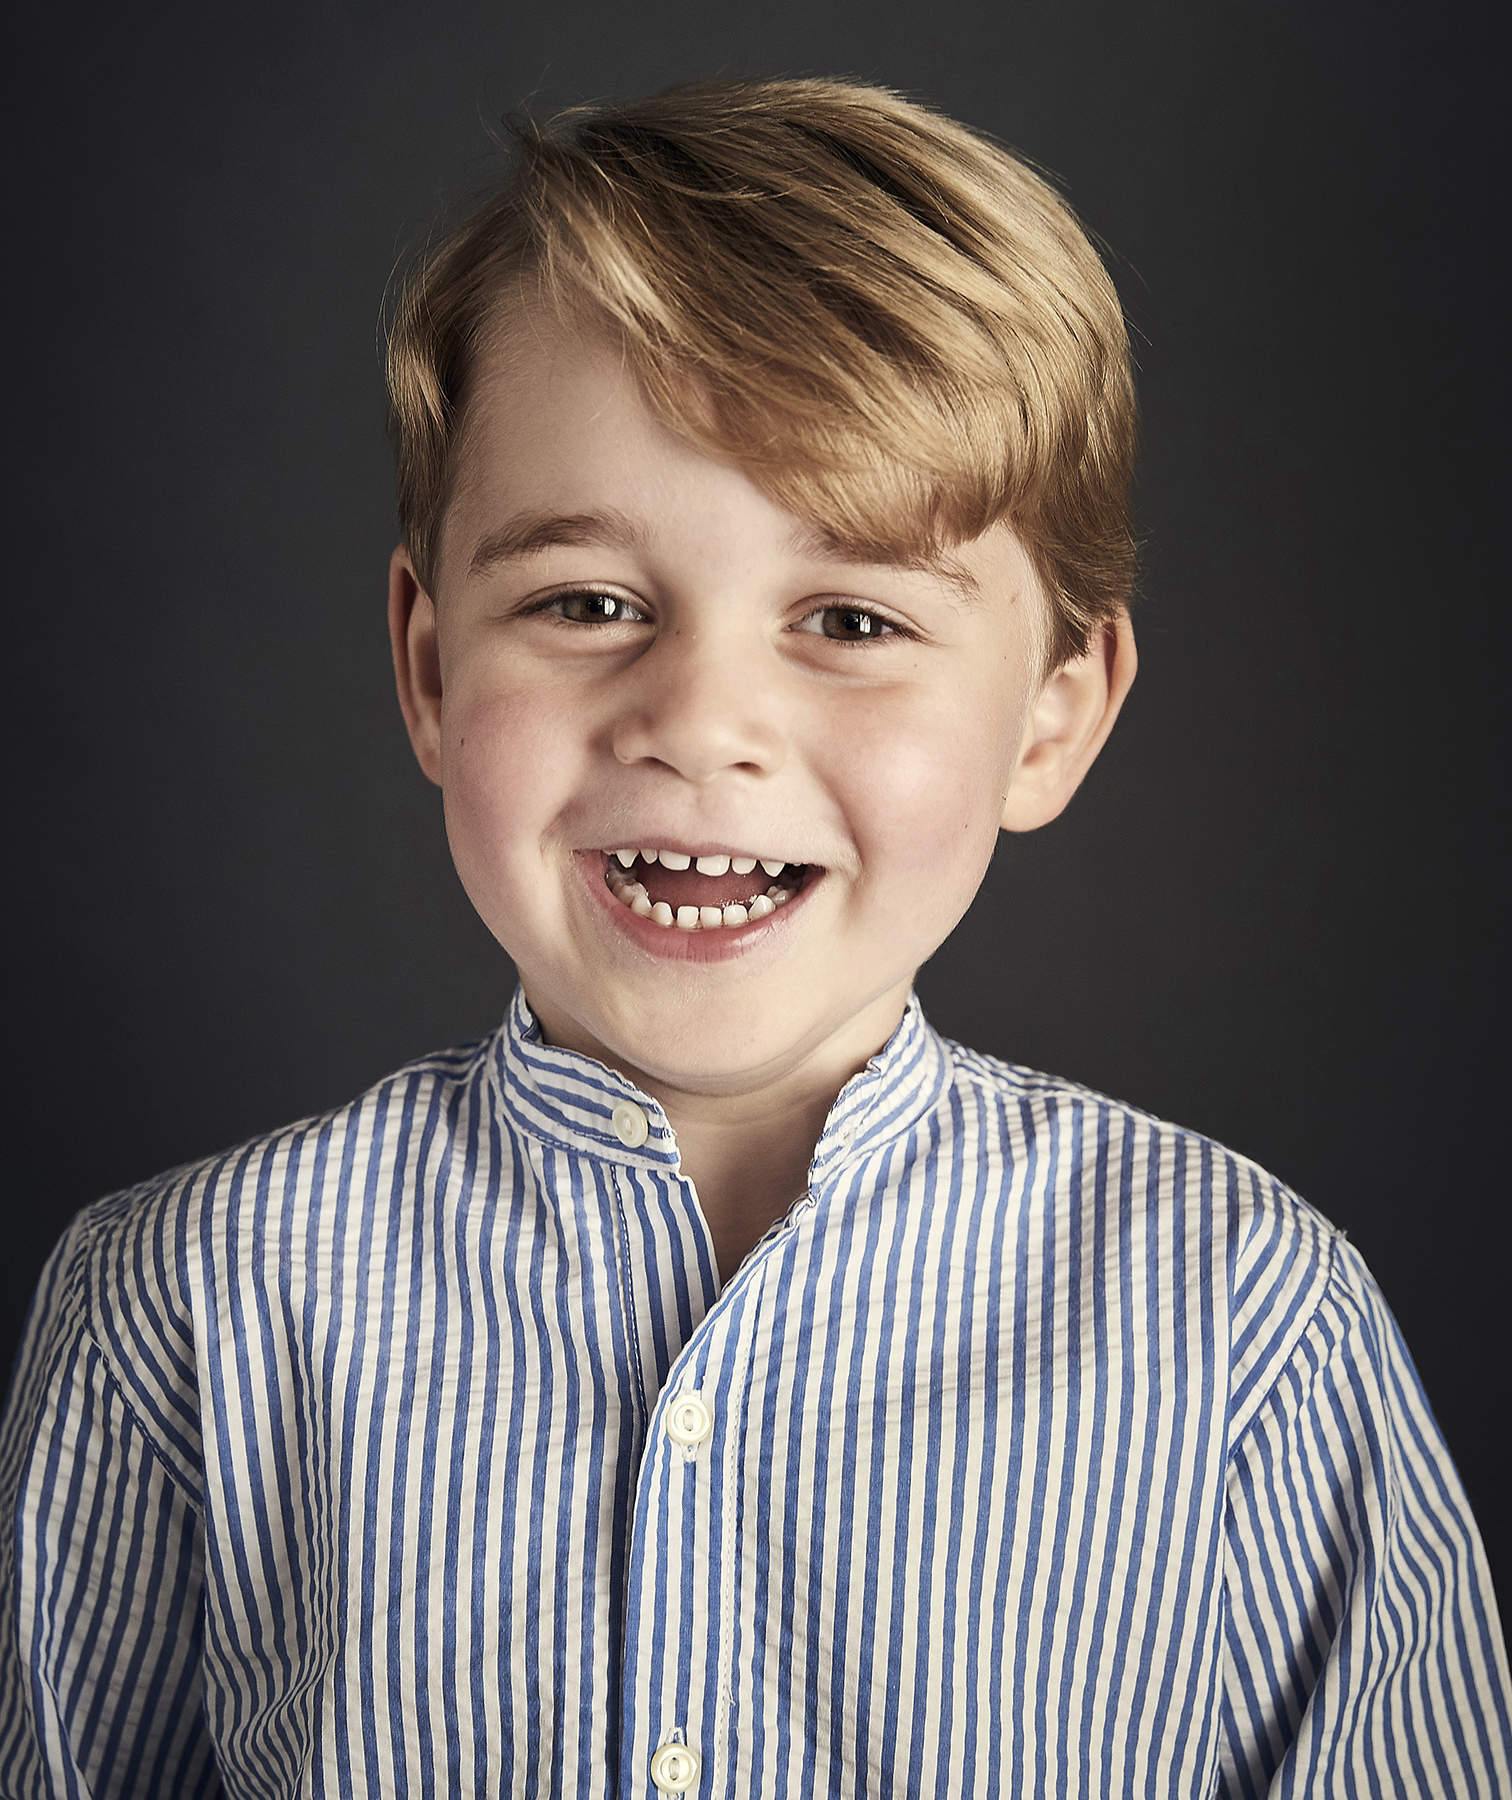 Here's Where to Buy Prince George's Adorable Birthday Shirt